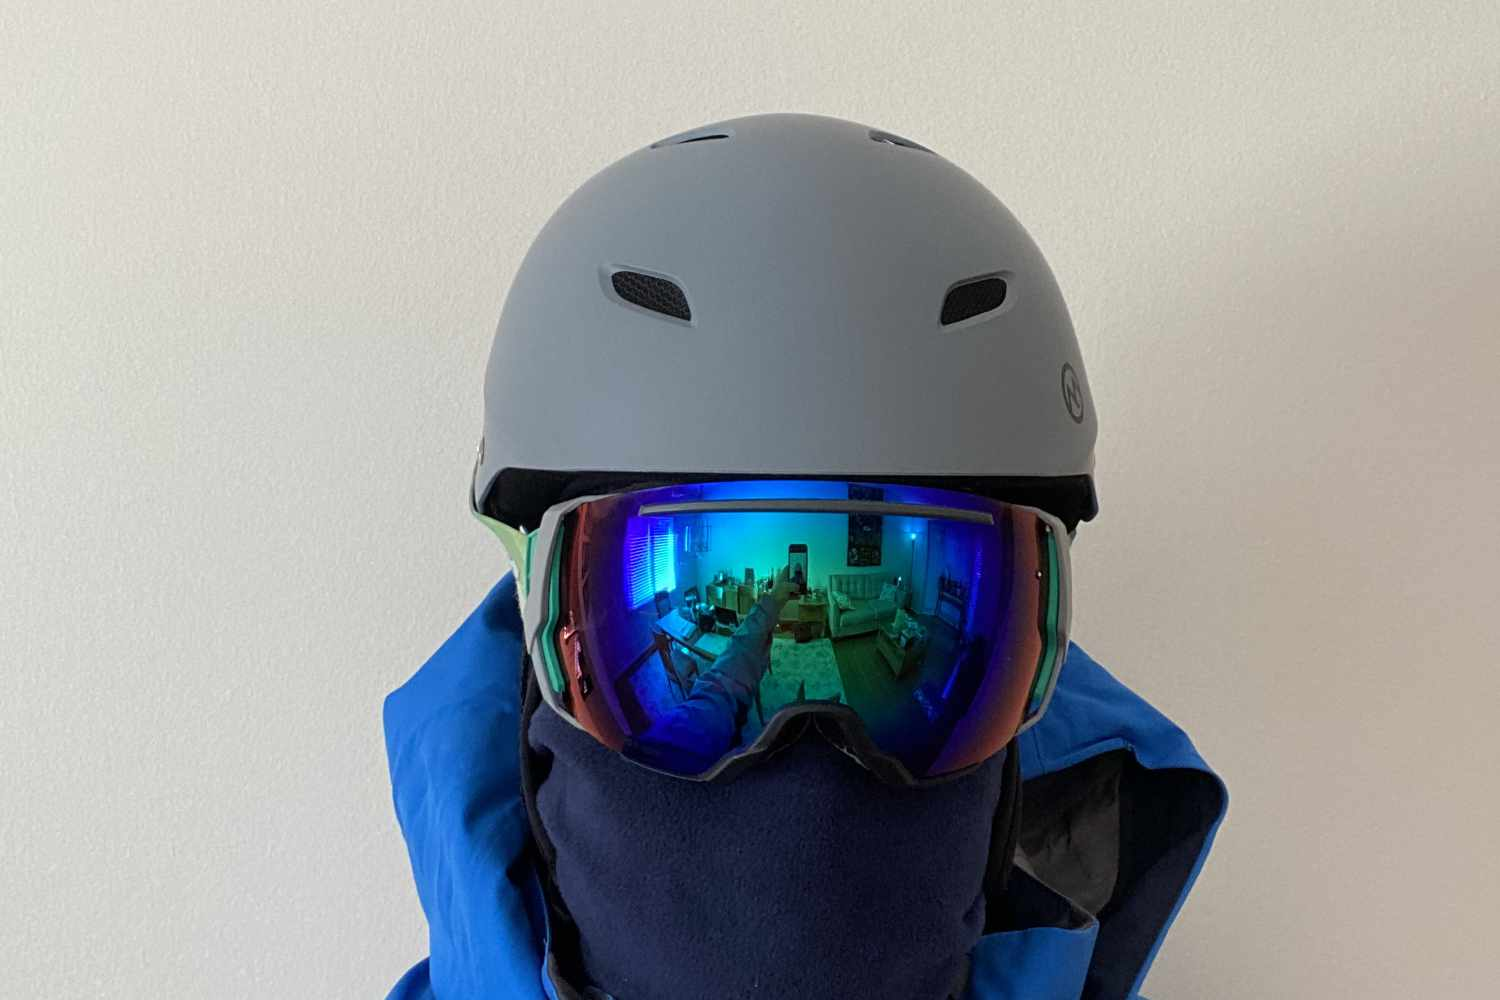 helmet front view smith goggles